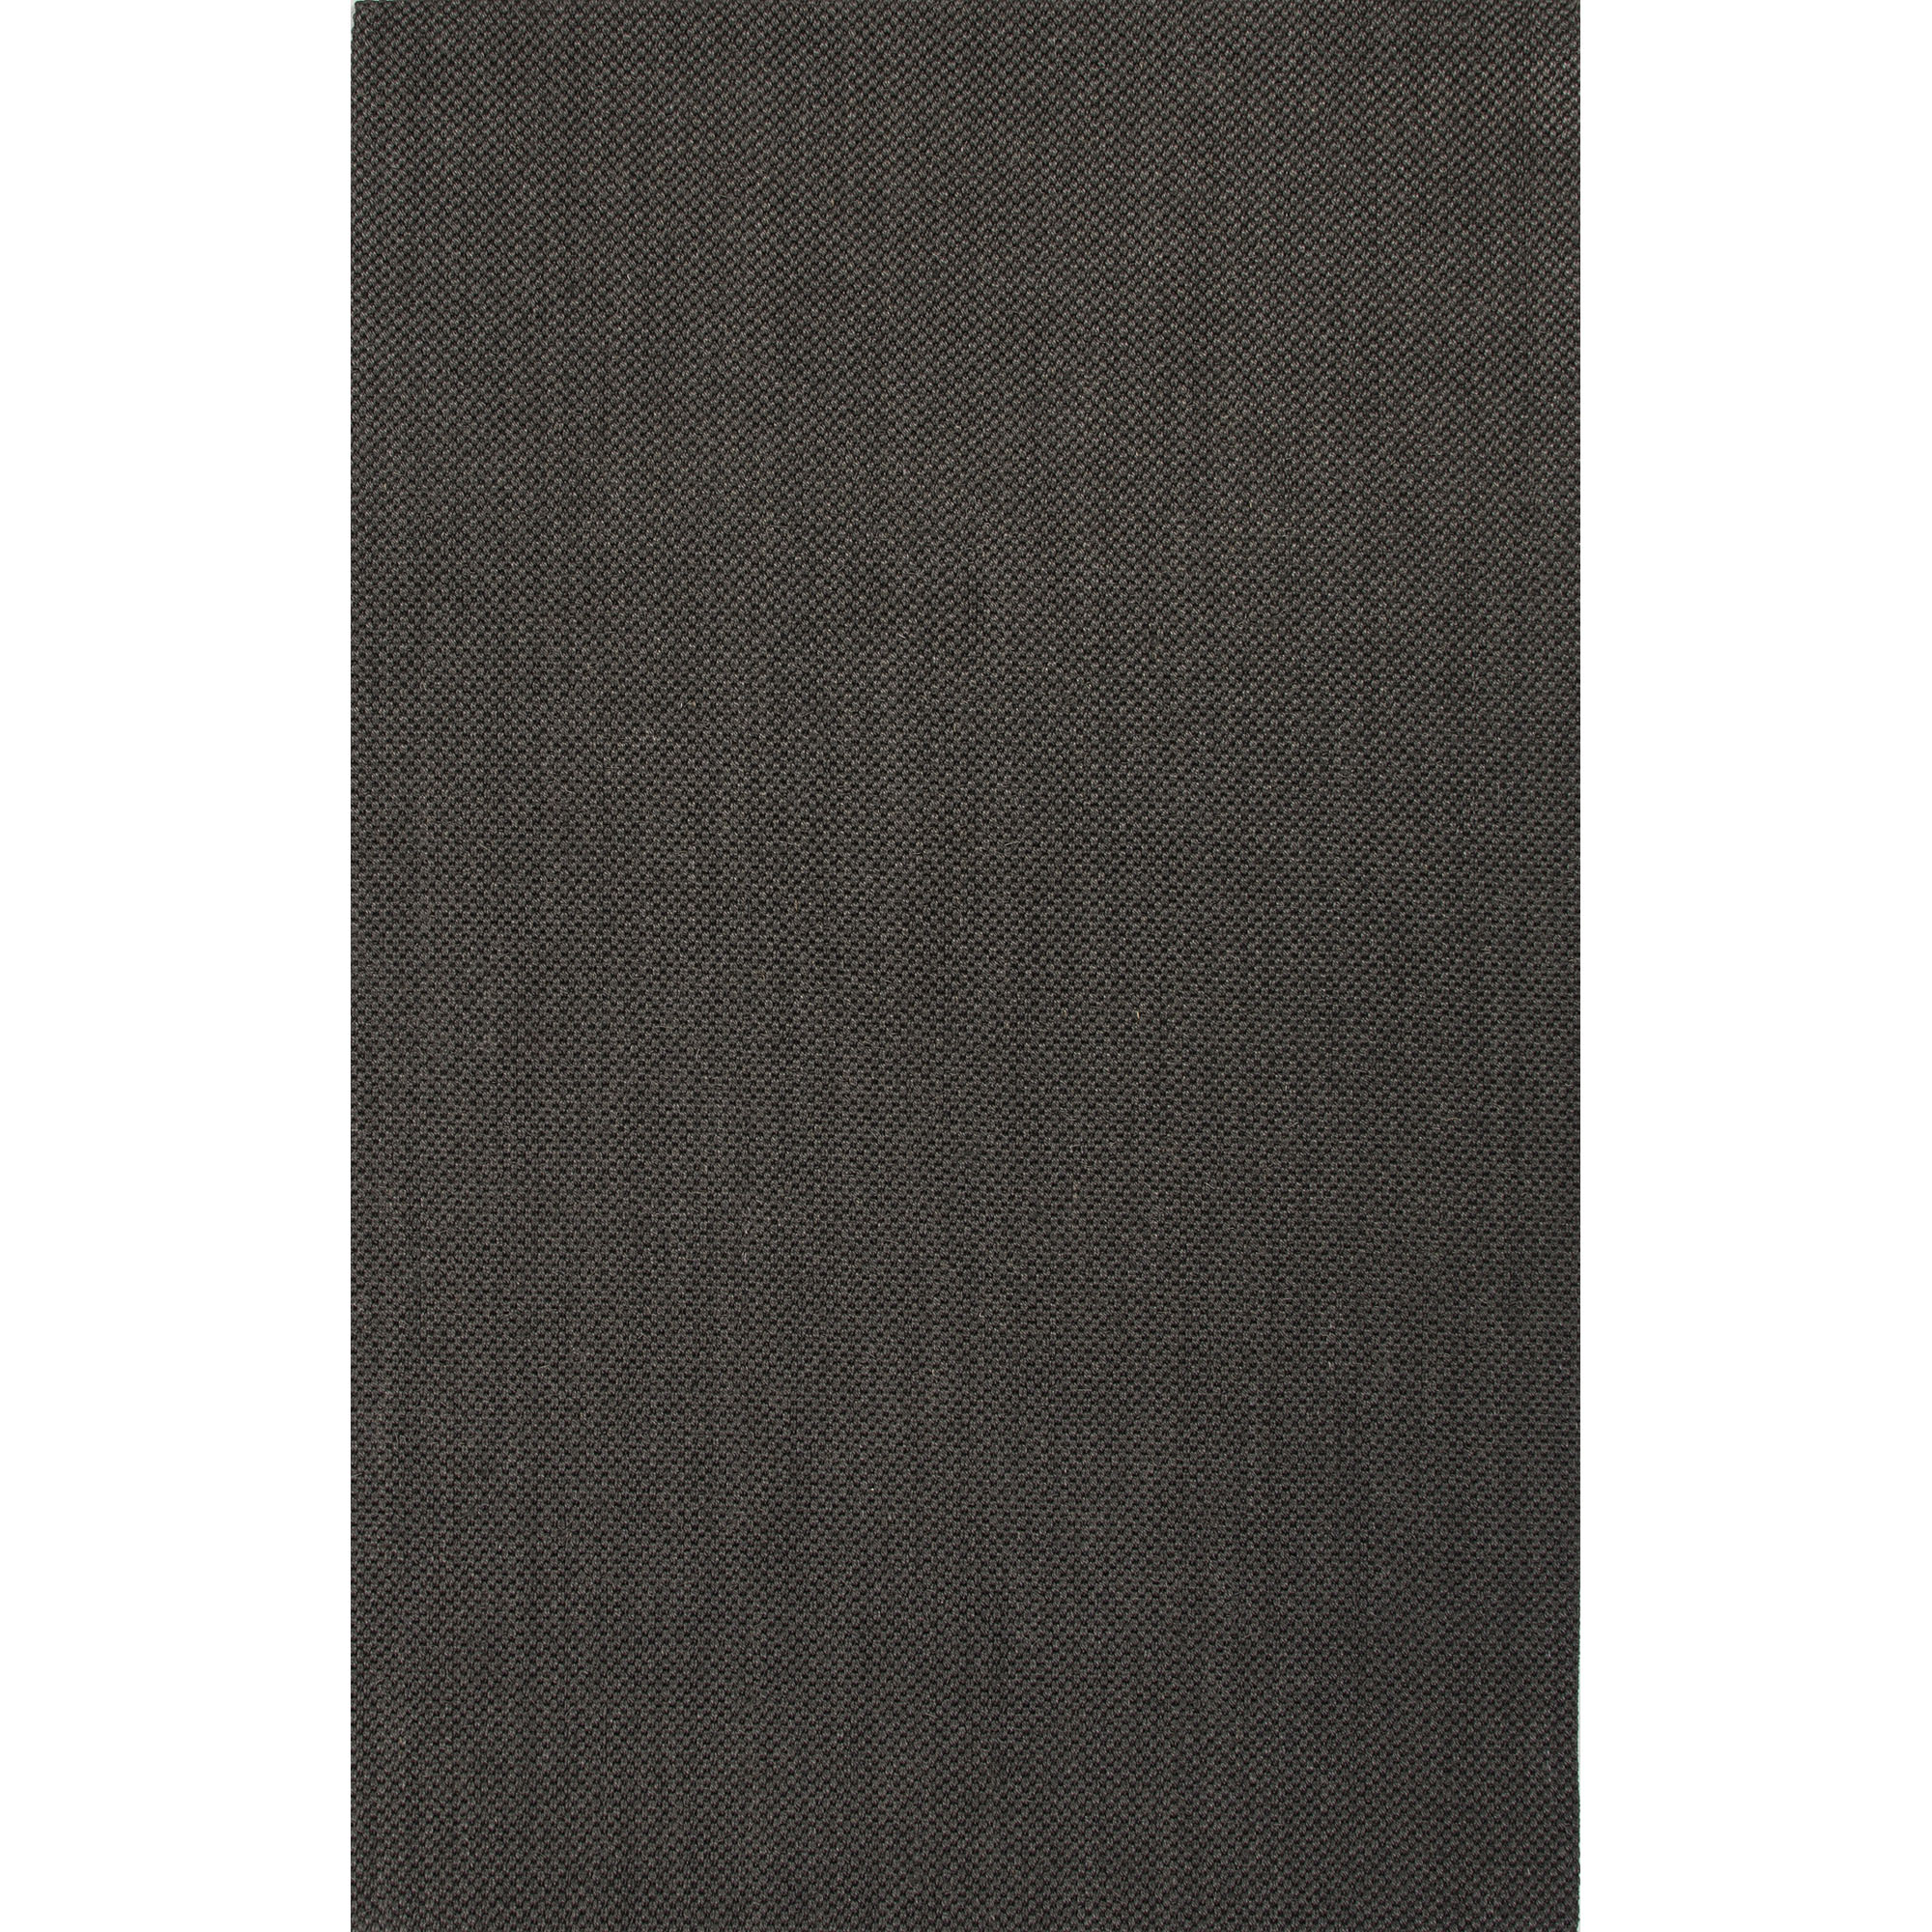 JAIPUR Rugs Naturals Sanibel 5 x 8 Rug - Item Number: RUG119169